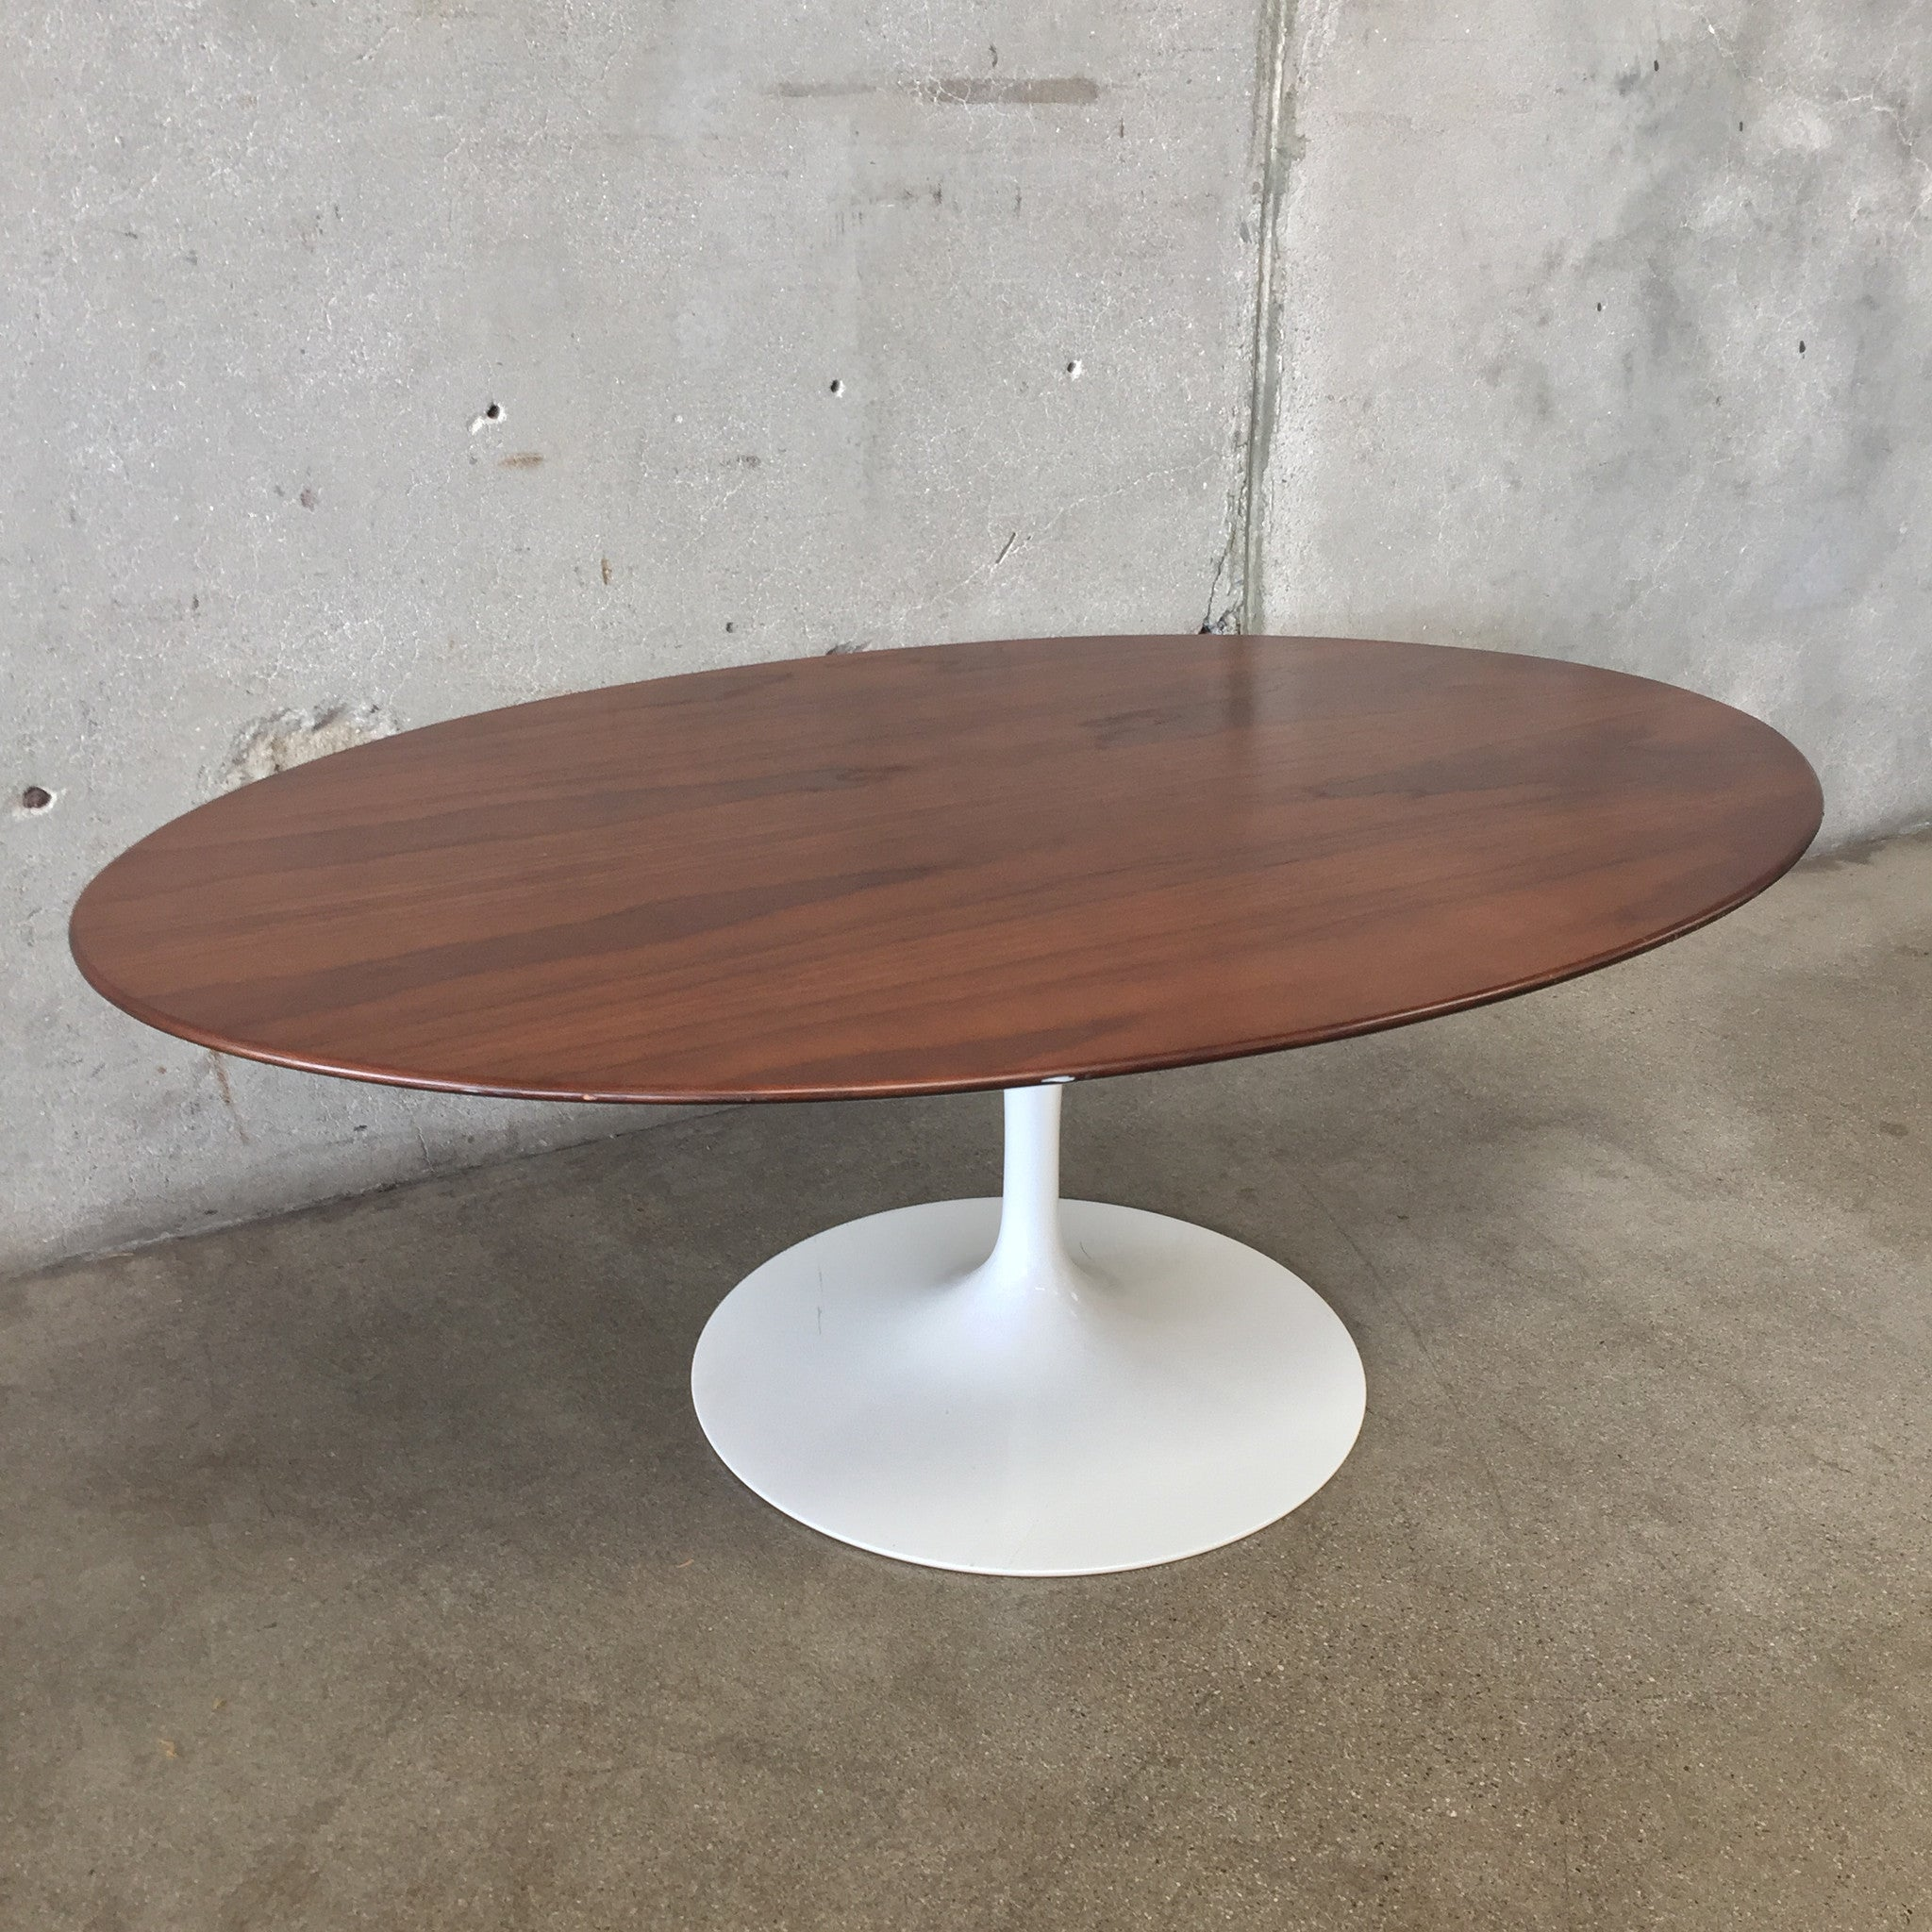 Knoll Saarinen Walnut Coffee Table Urbanamericana